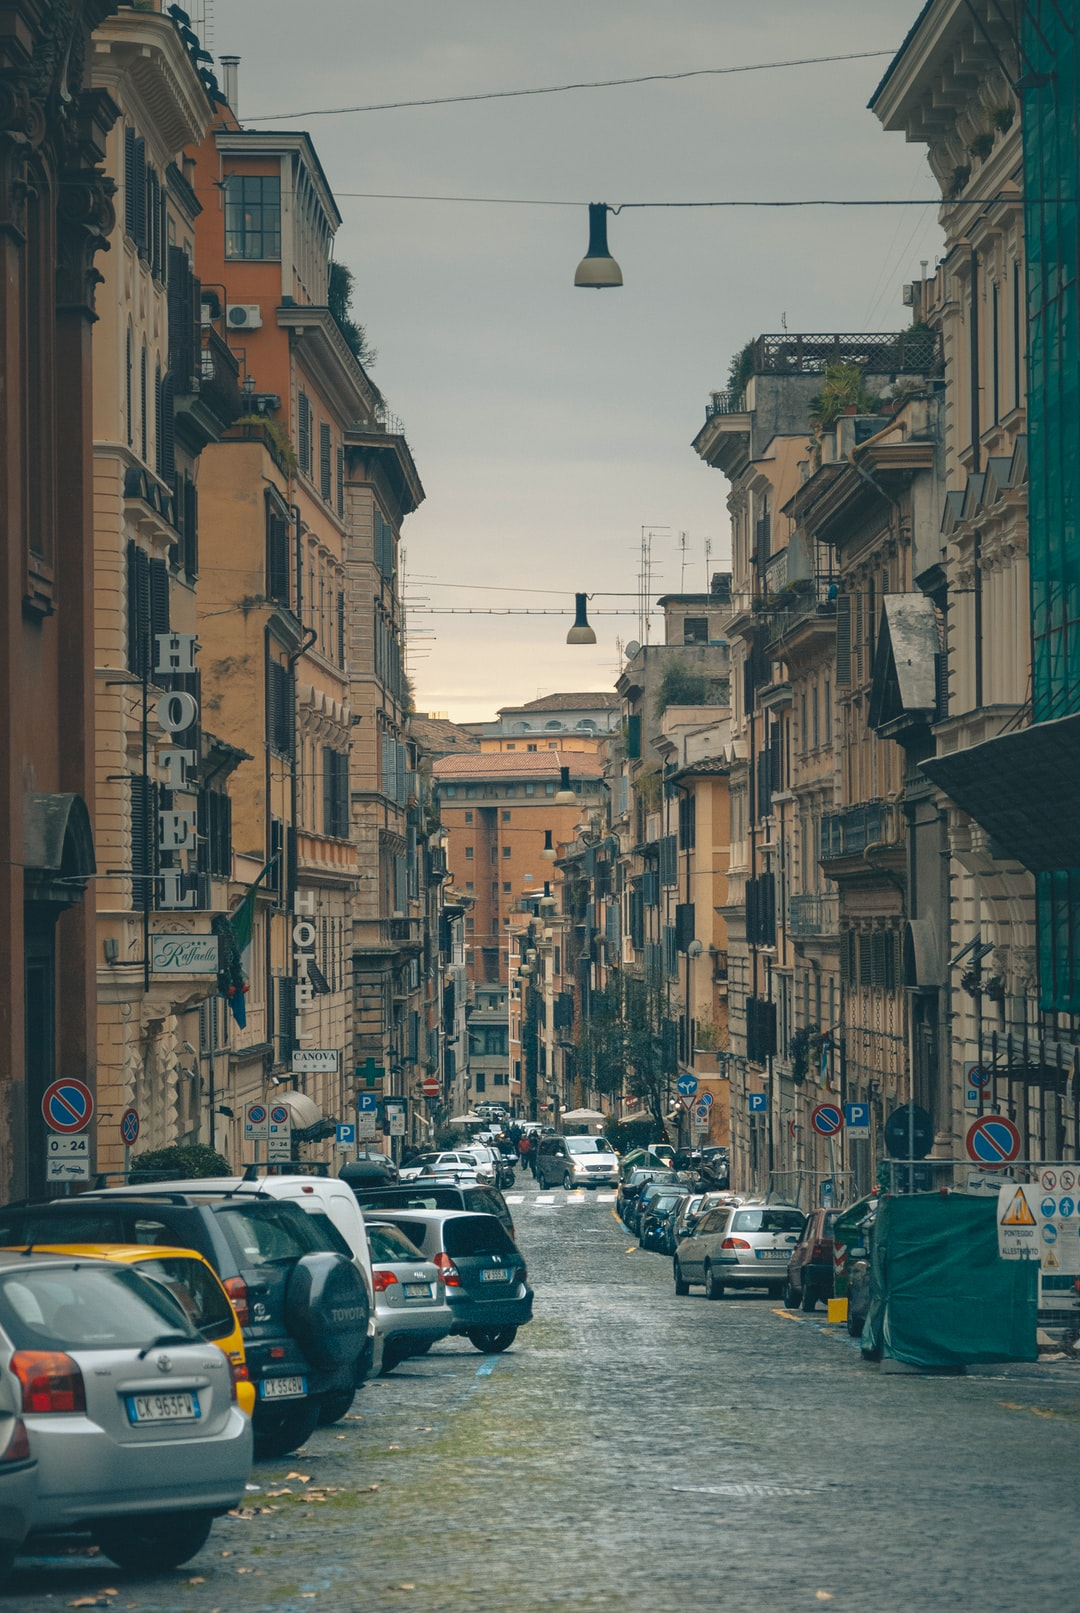 It's a small street in Rome. Somewhere in the Coliseum area.